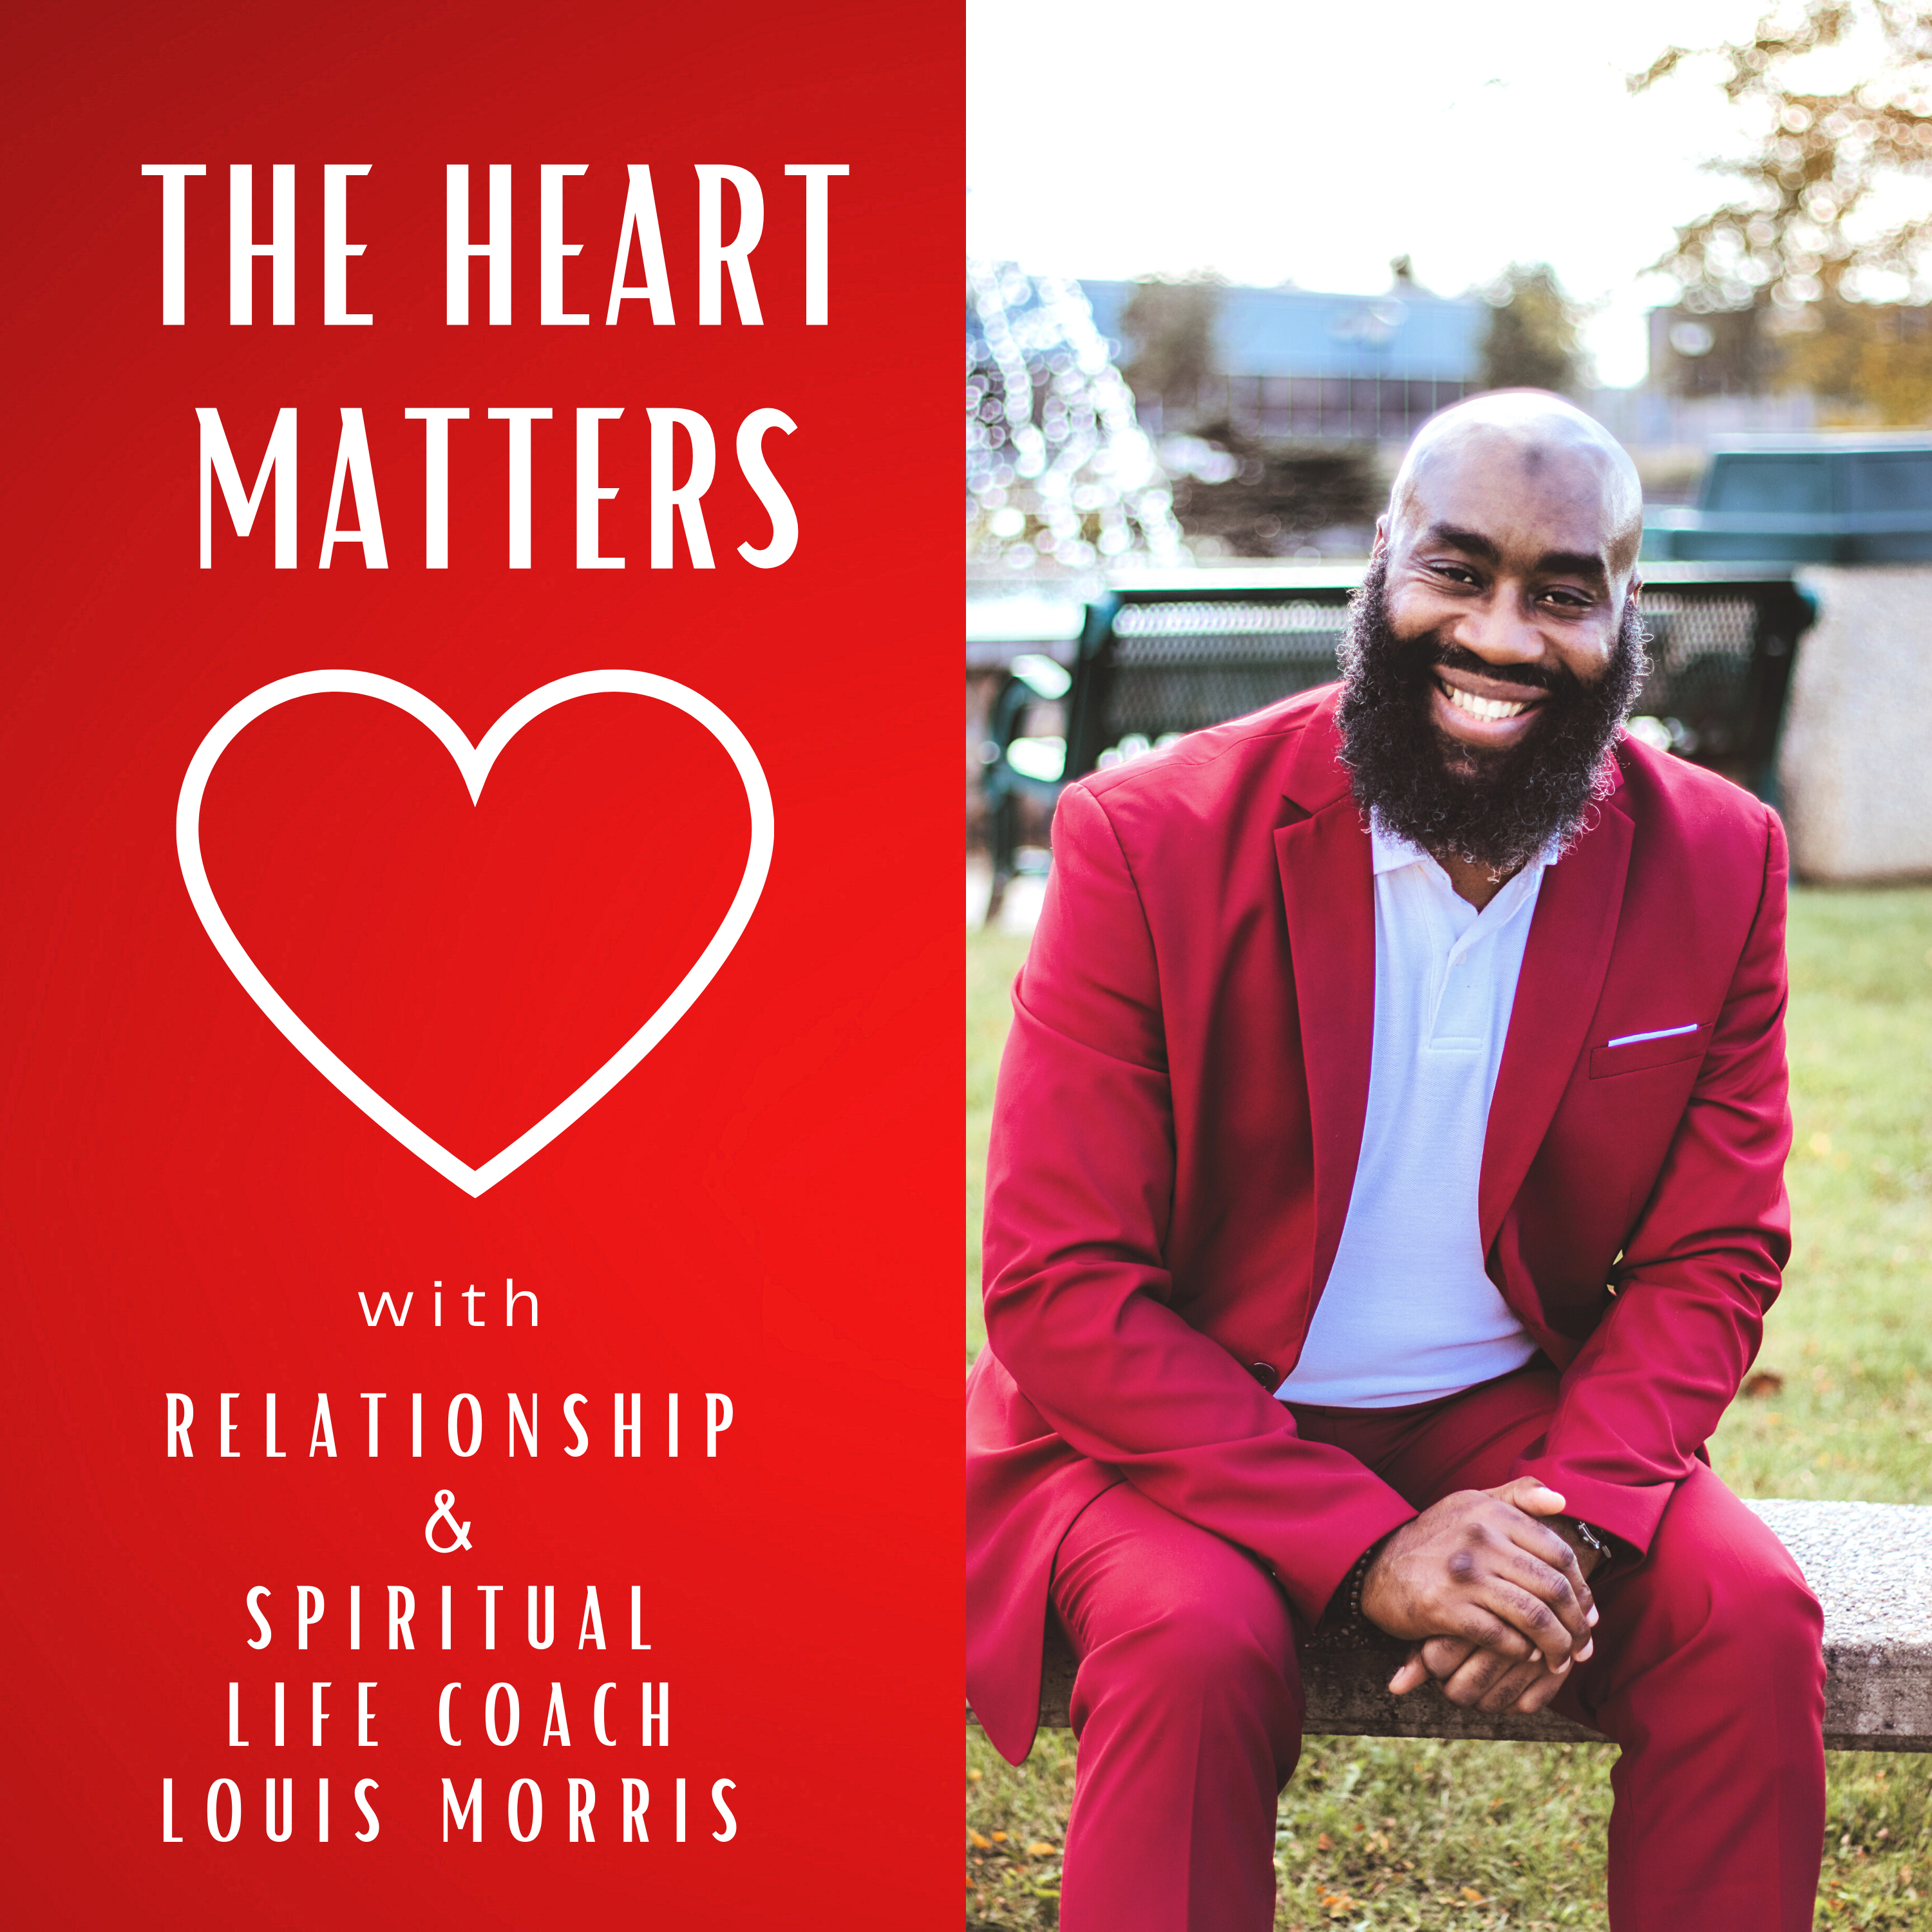 The Heart Matters with Life Coach Louis Morris show art